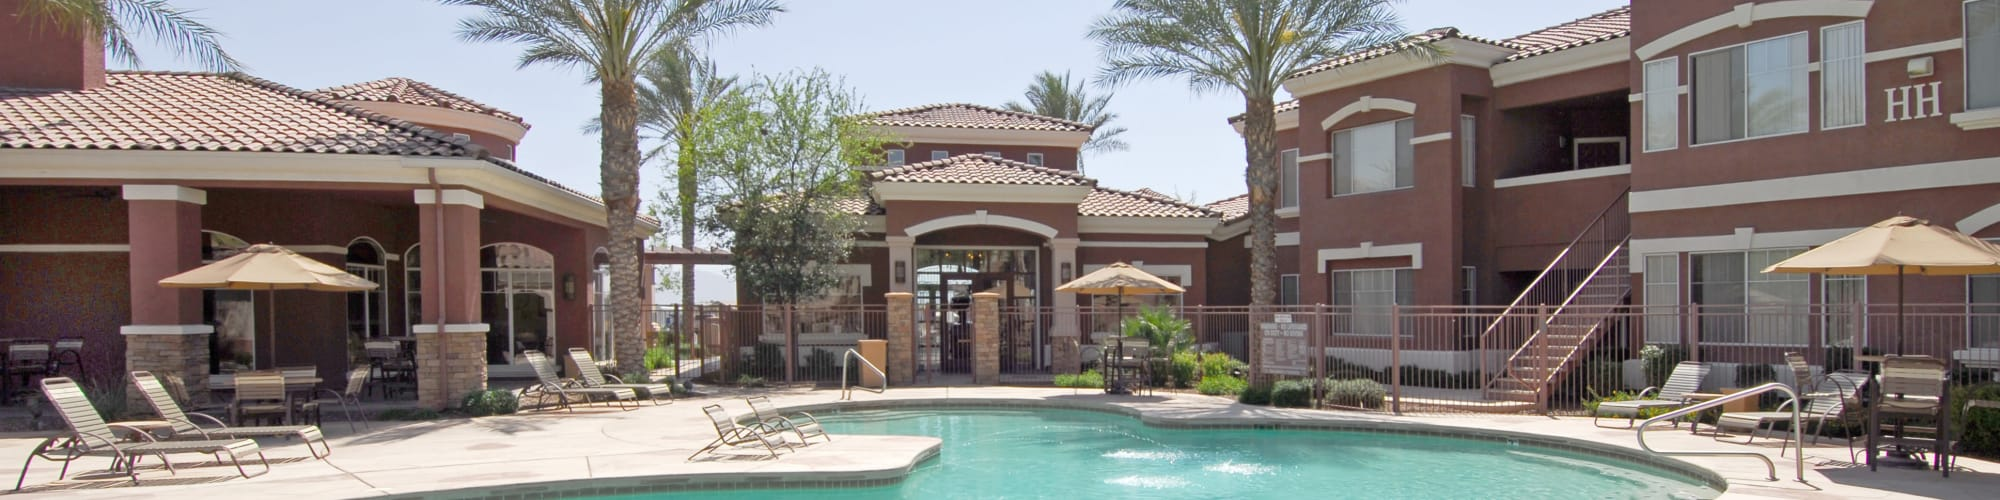 Contact us at Remington Ranch in Litchfield Park, Arizona